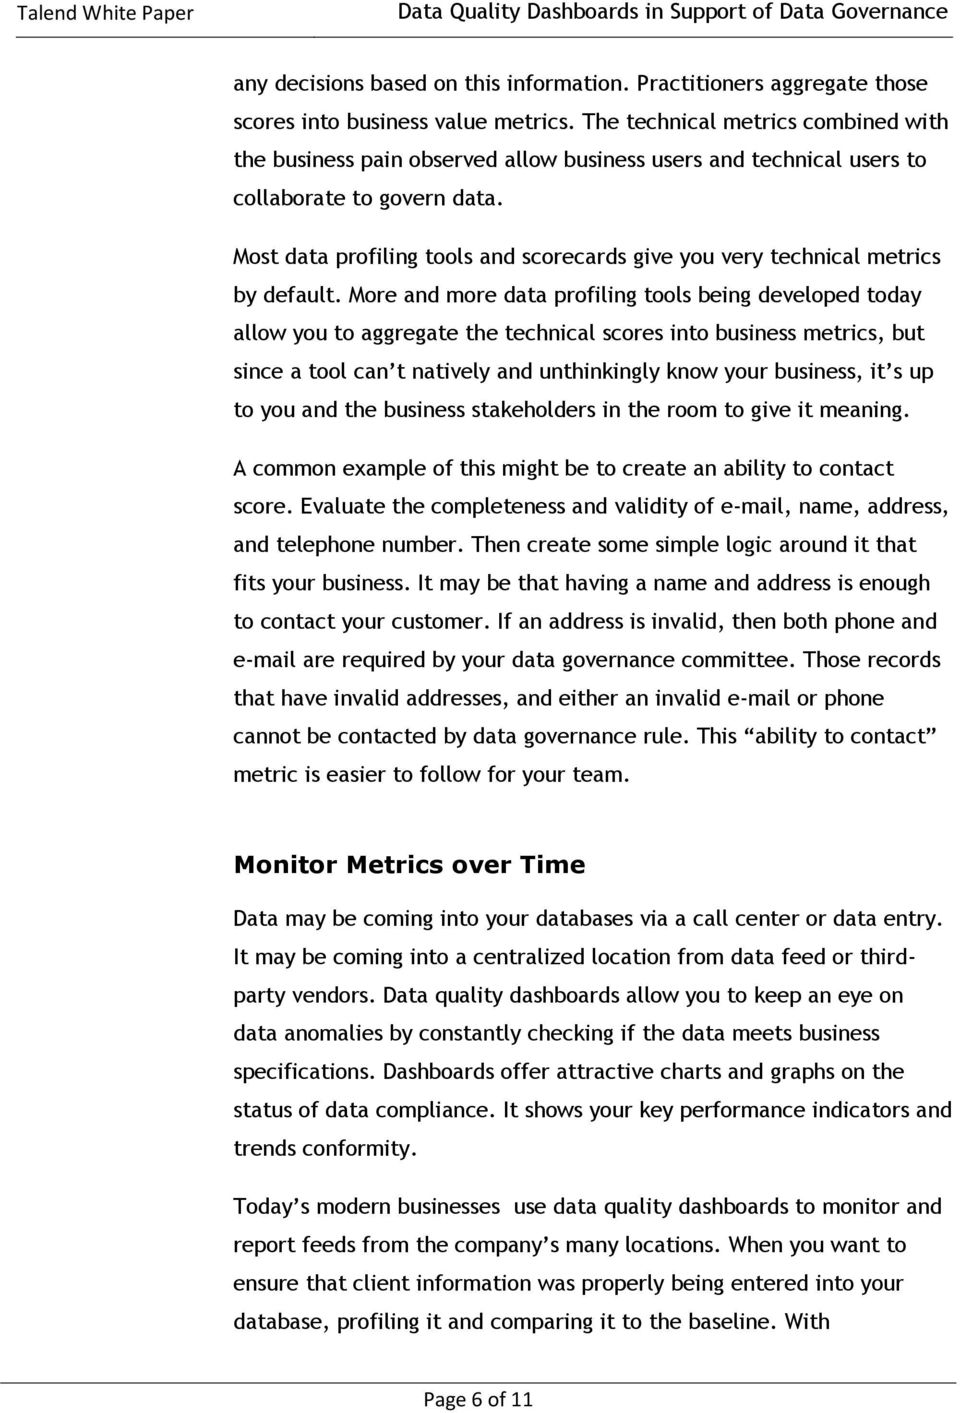 Most data profiling tools and scorecards give you very technical metrics by default.